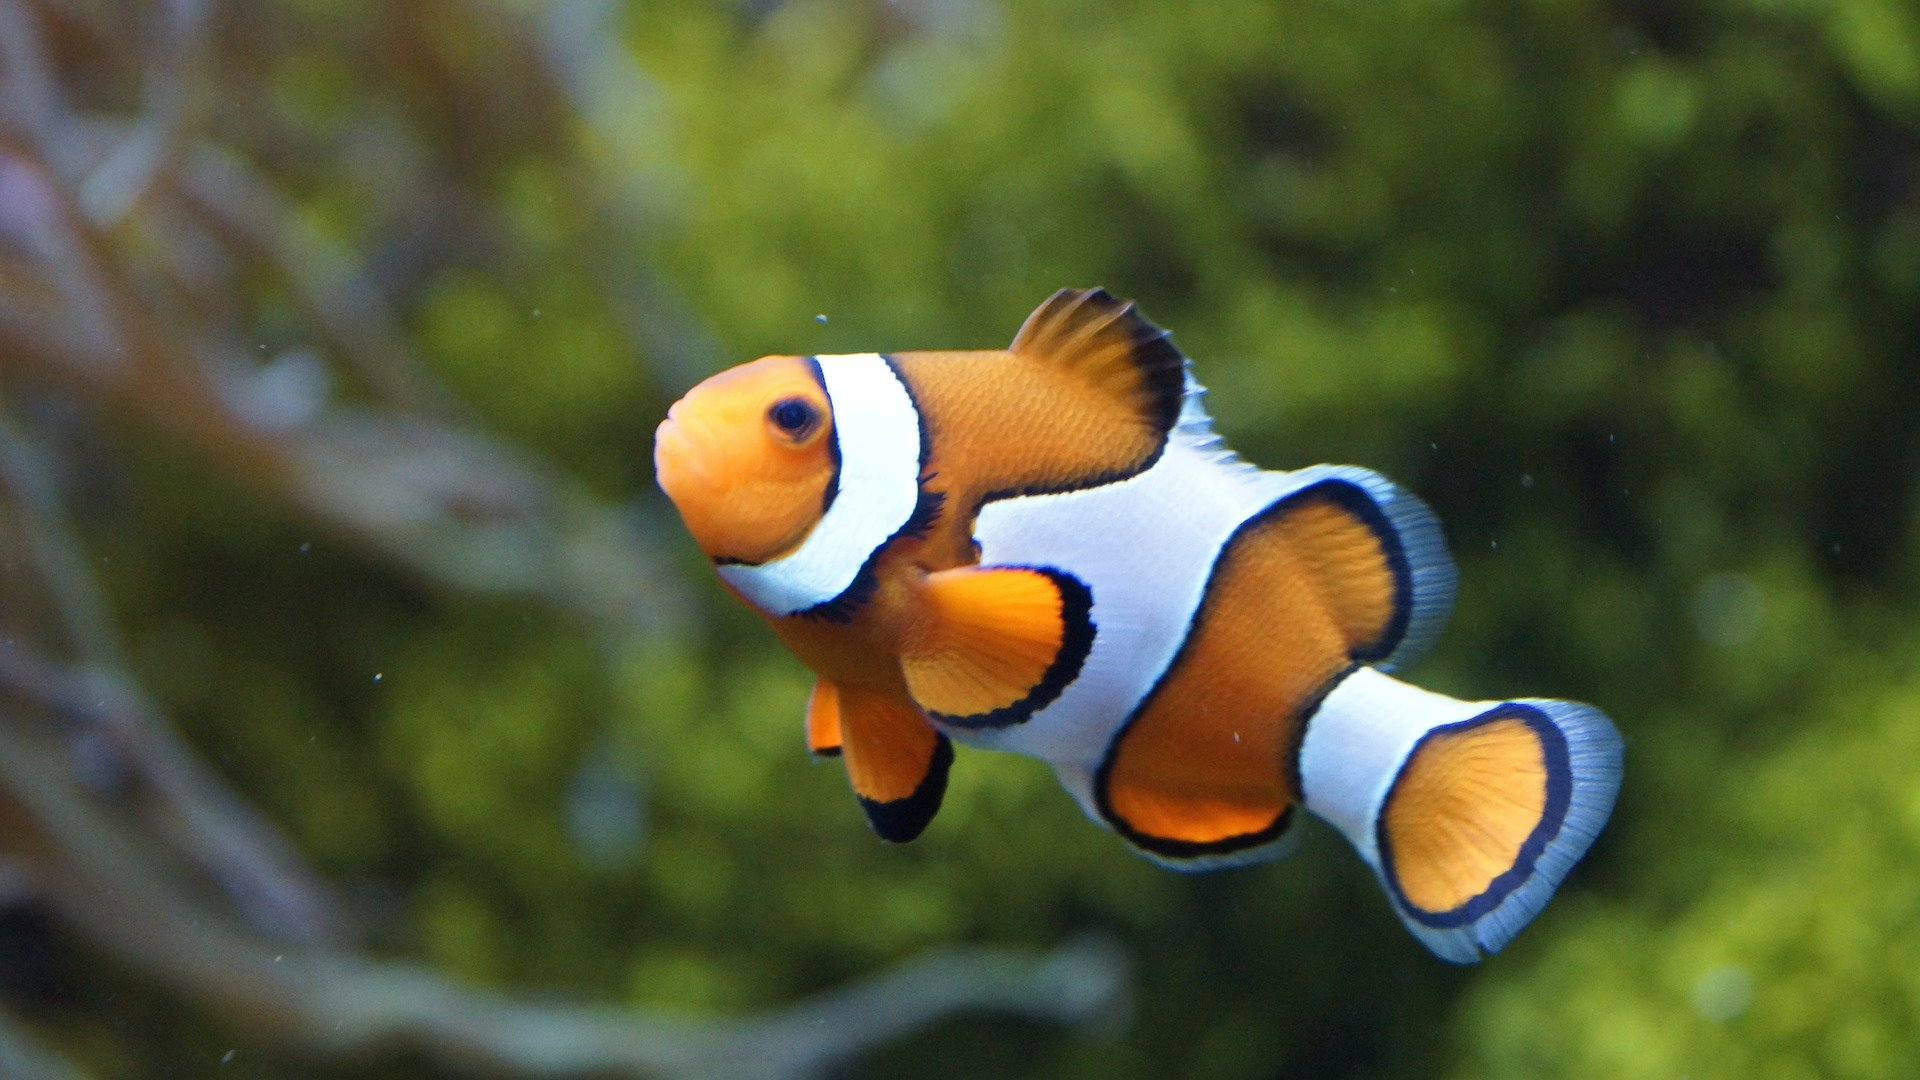 photo of 'The Nemo effect' is untrue: Animal movies promote awareness, not harm, say researchers image